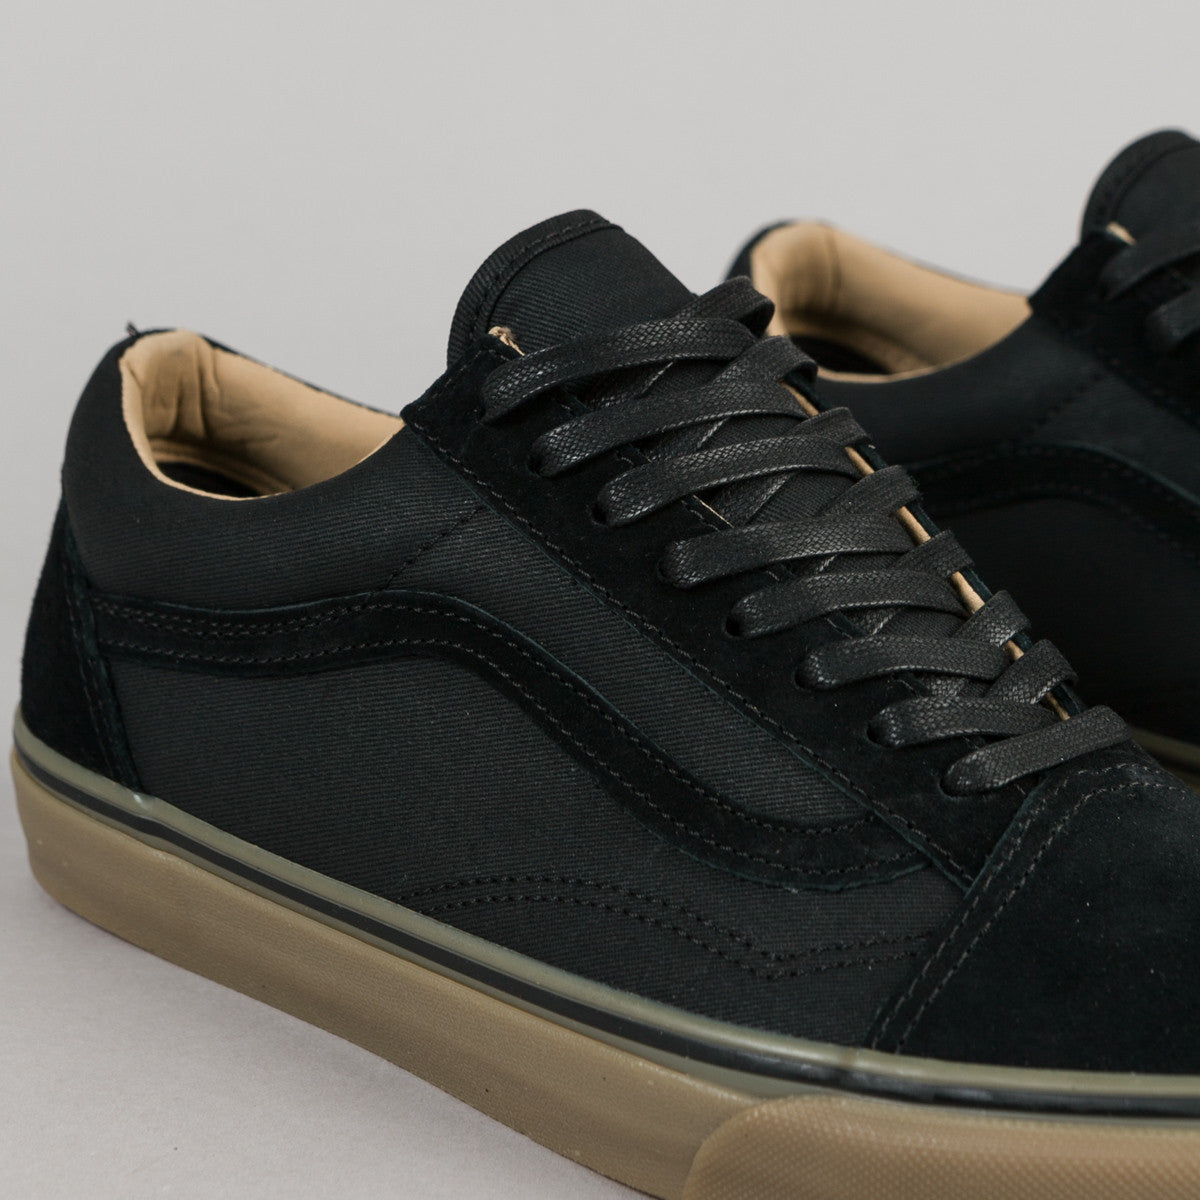 vans black old skool reissue dx trainers